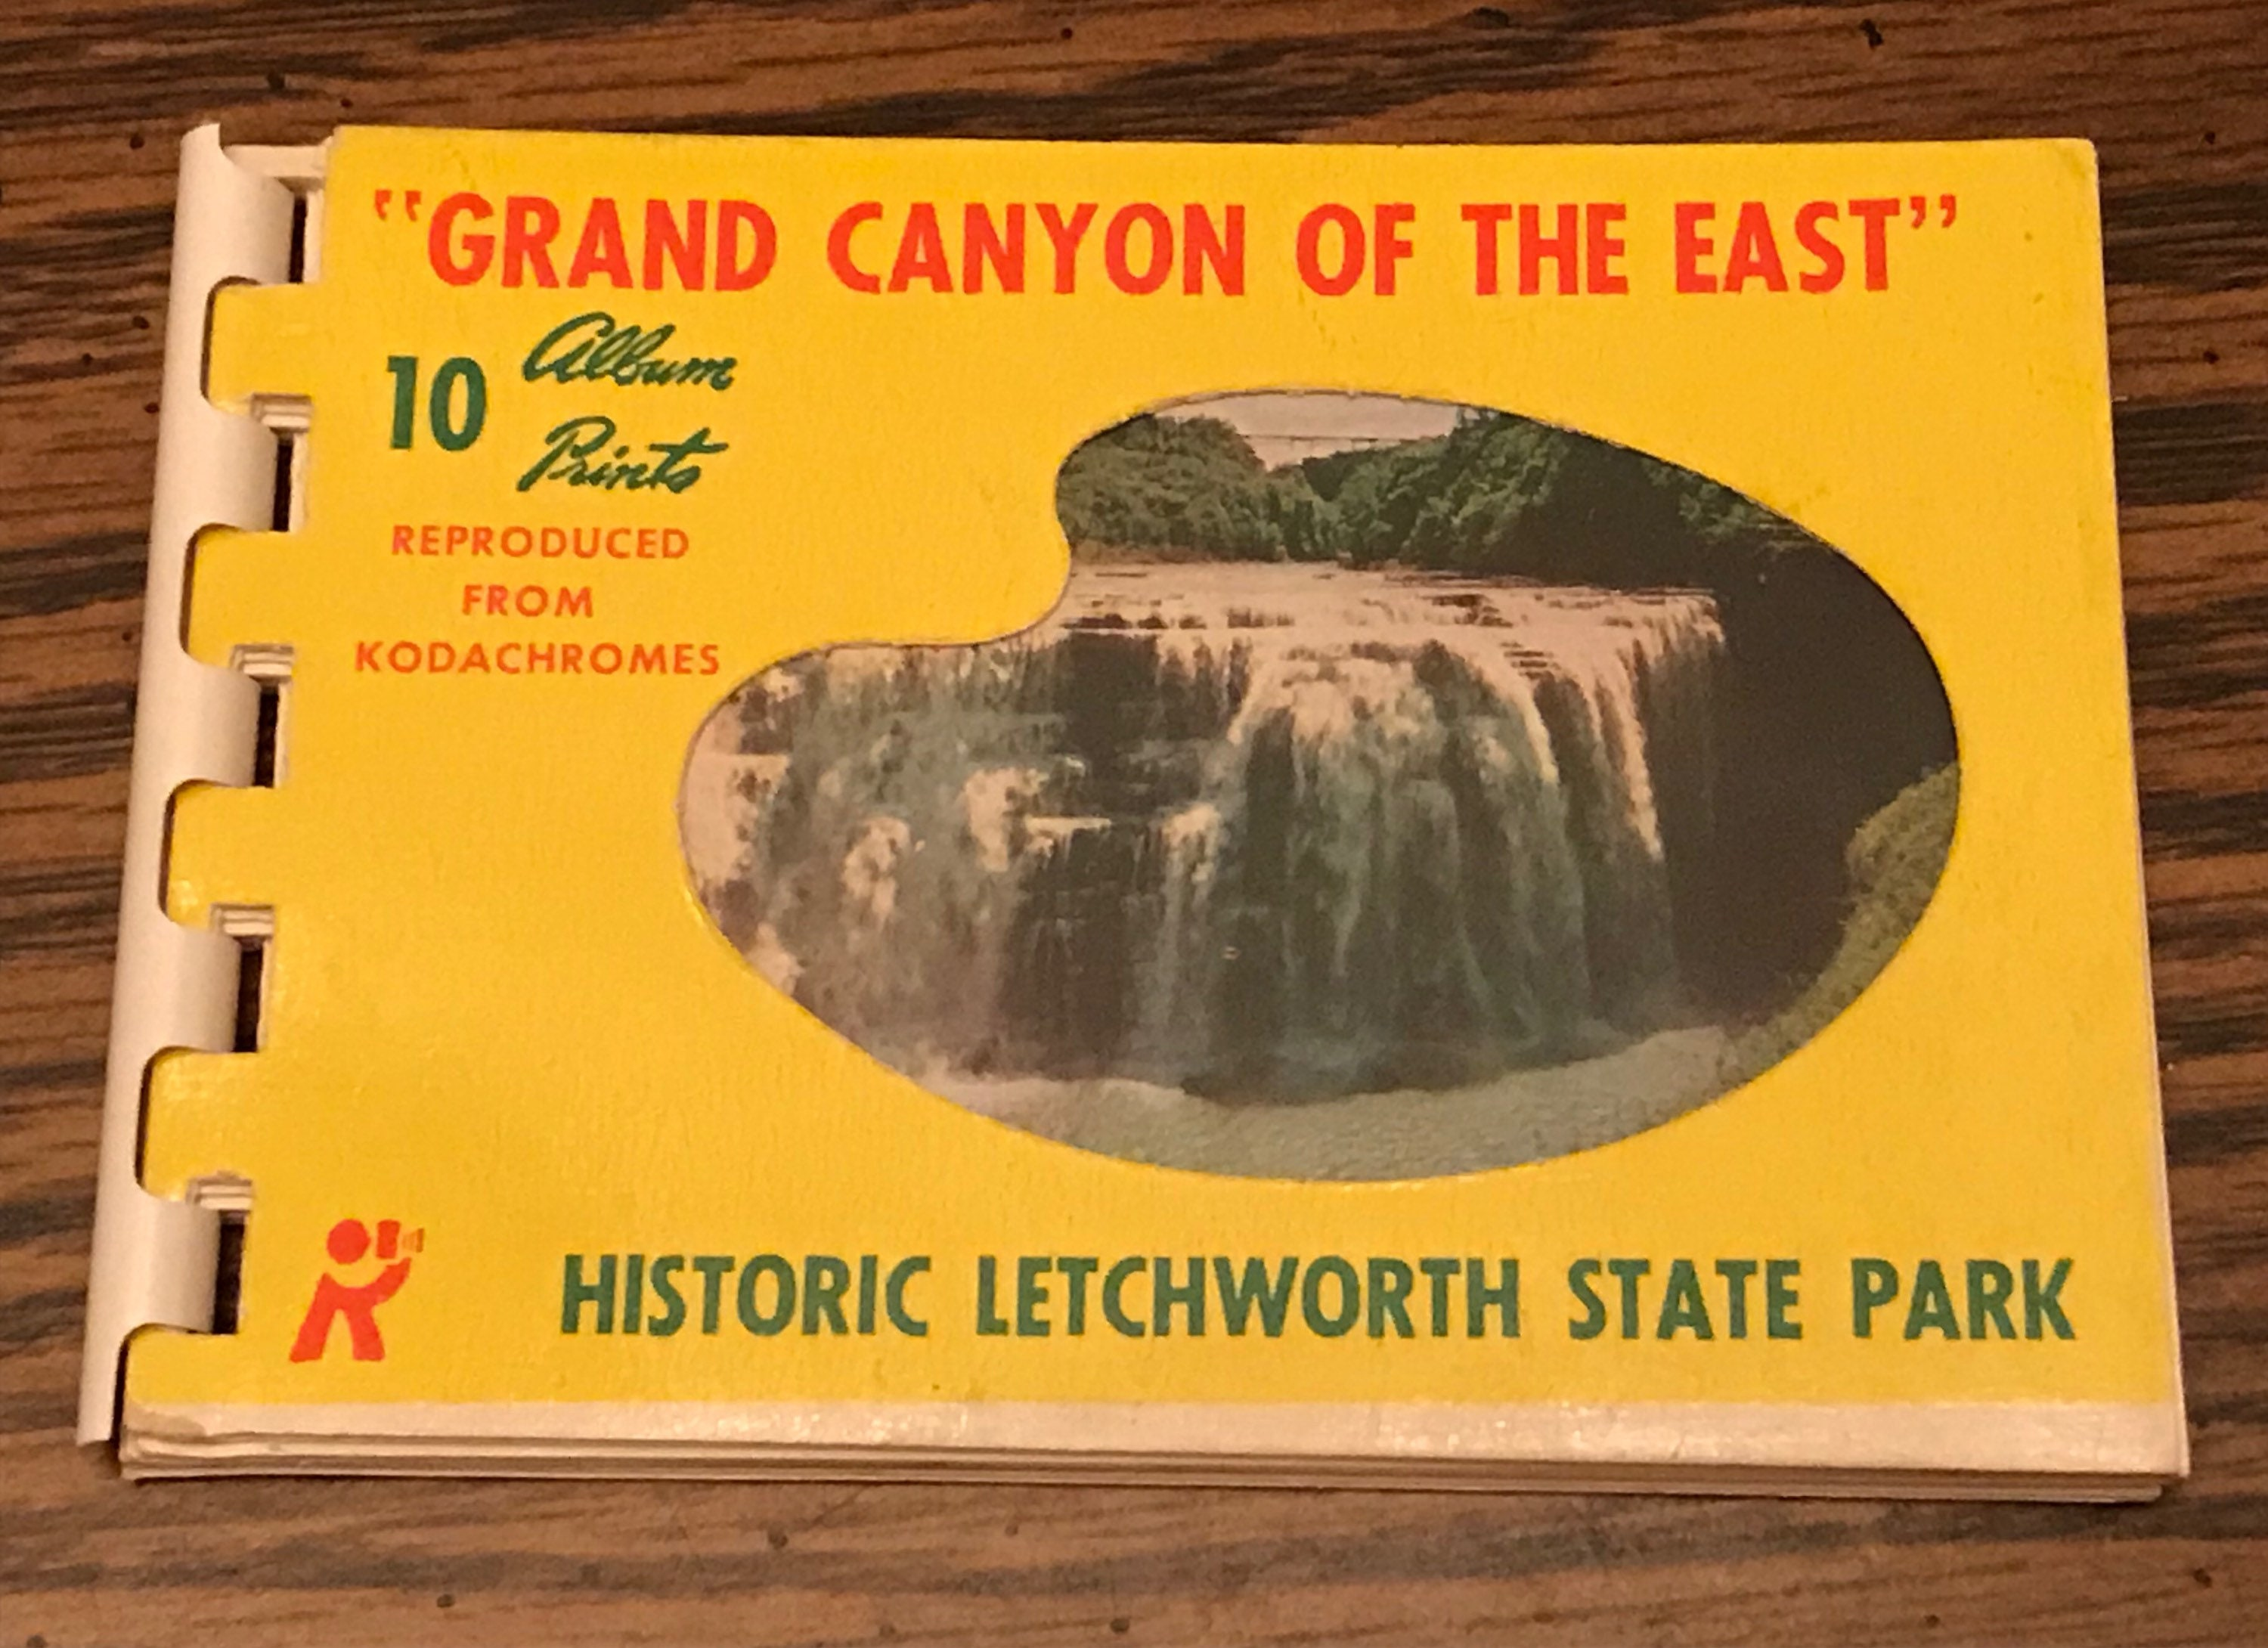 Historic Letchworth State Park NY Grand Canyon of the